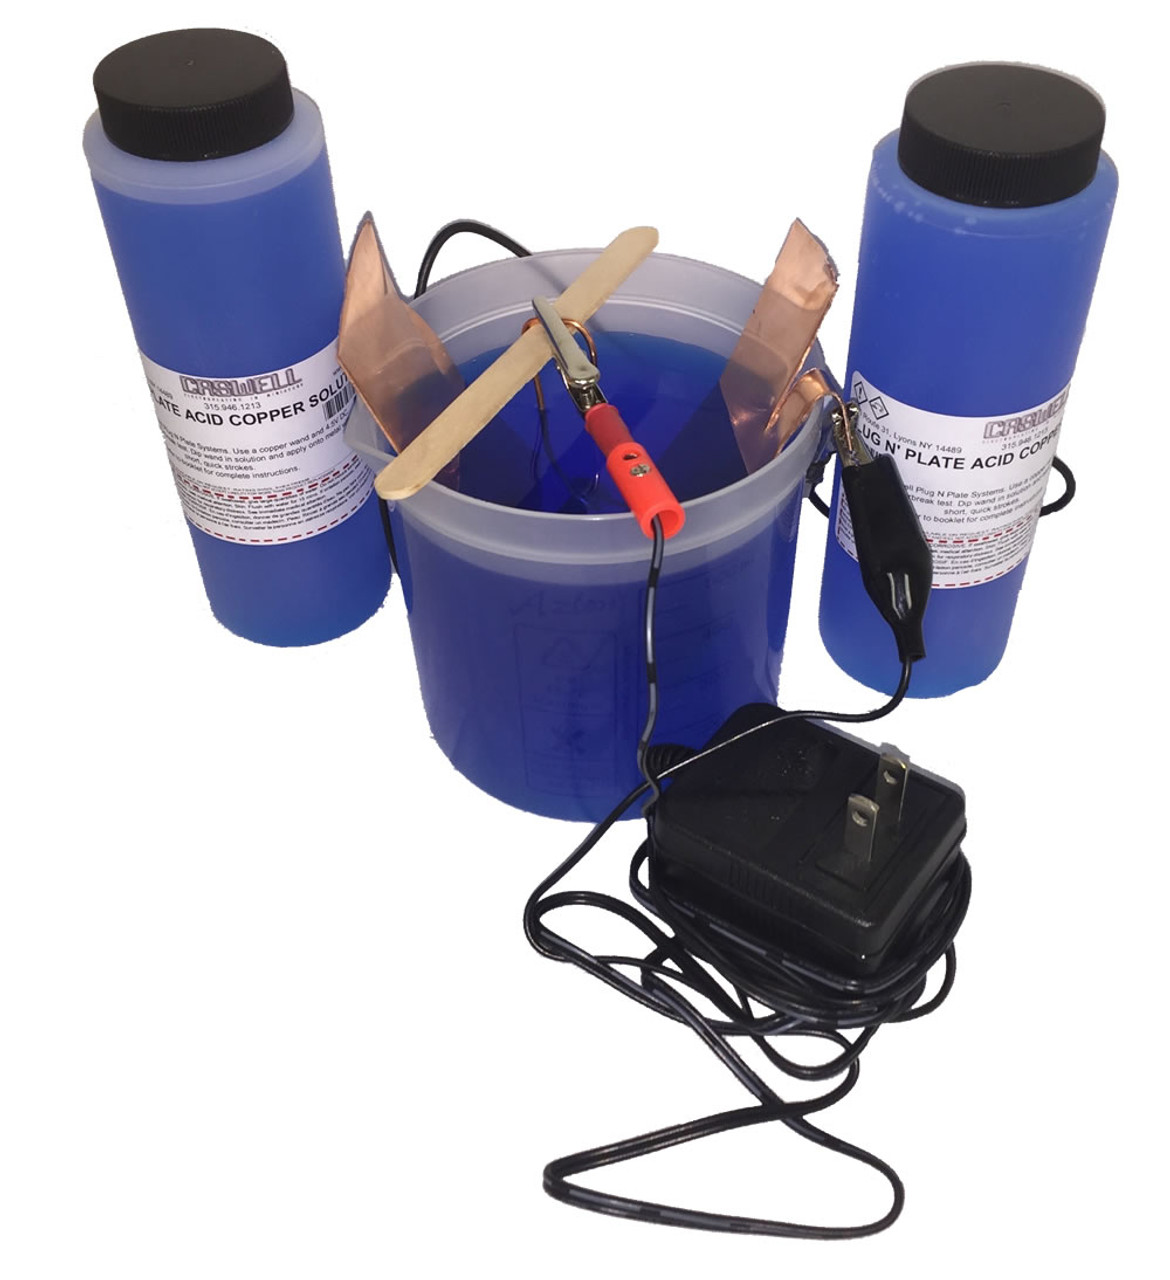 Caswell Science Plating Kit - Acid Copper Plating